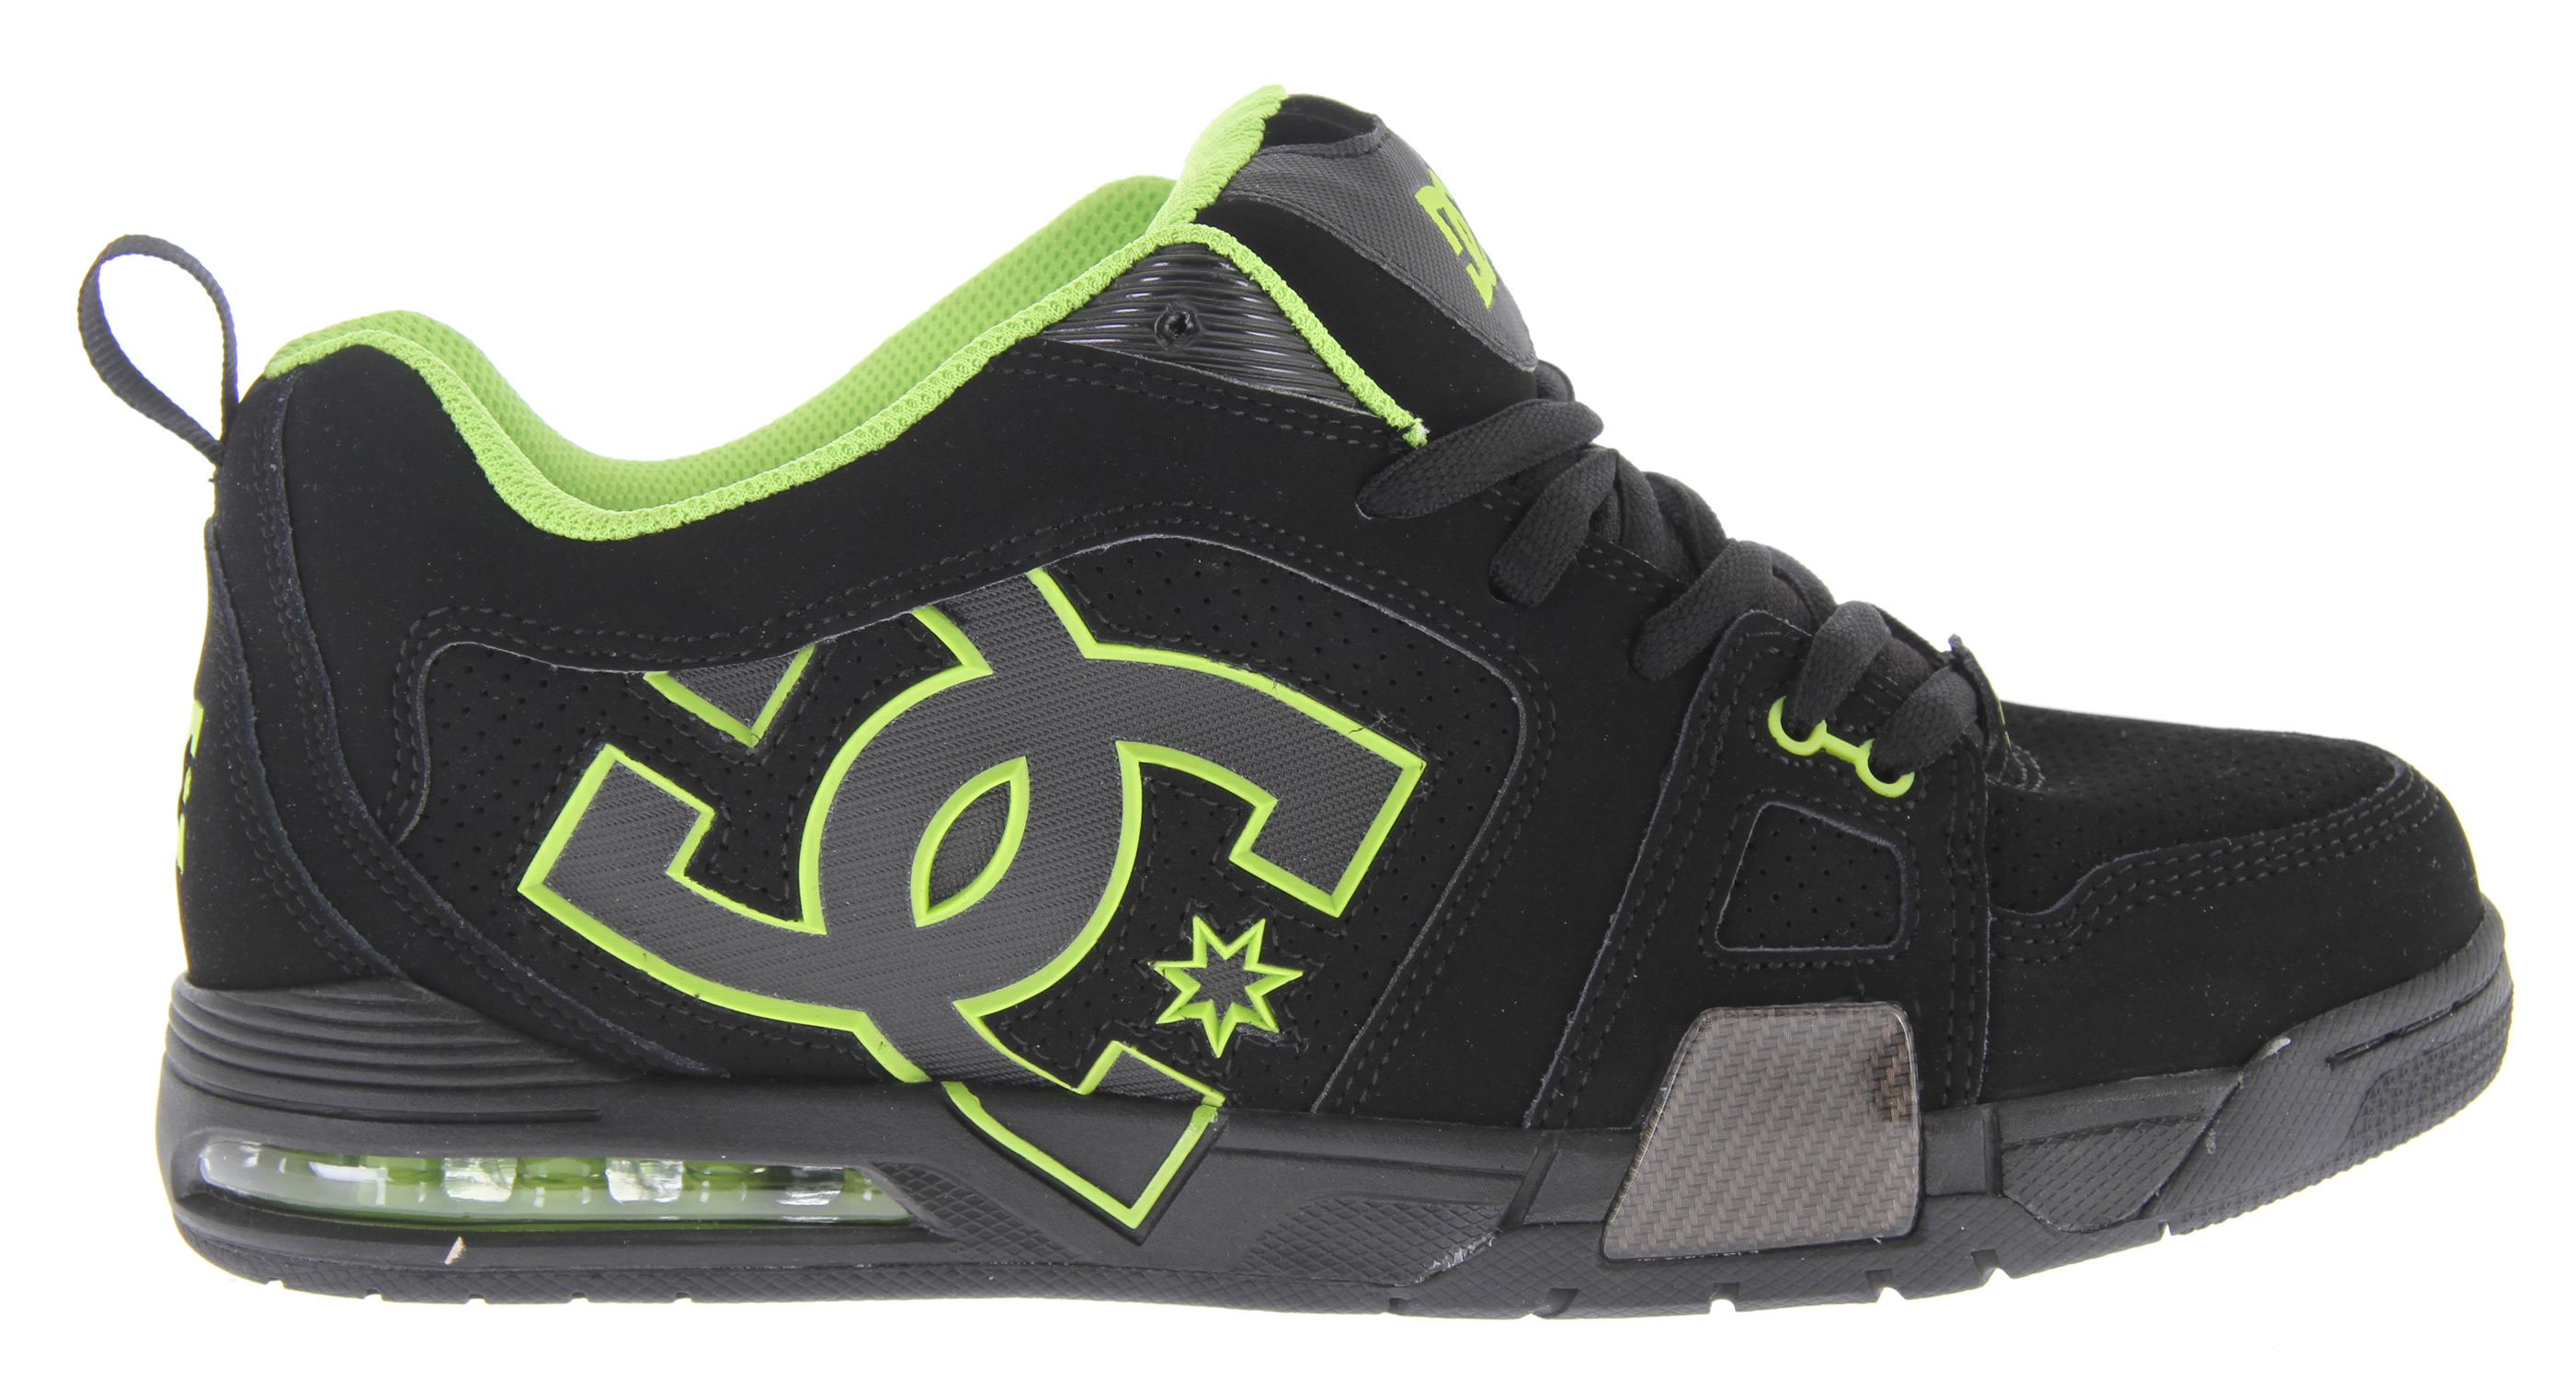 Skateboard Key Features of the DC Frenzy Skate Shoes: Soft Resilient Action Leather Perforated Upper Panel Hidden Nylon Lace Loop TPU Eyelets Foam-Padded Tongue and Collar Lightweight Mesh Tongue Spandex Tongue Holders DC's Performance Wrap Cup Sole Mid-Length Airbag Performalite - $57.95